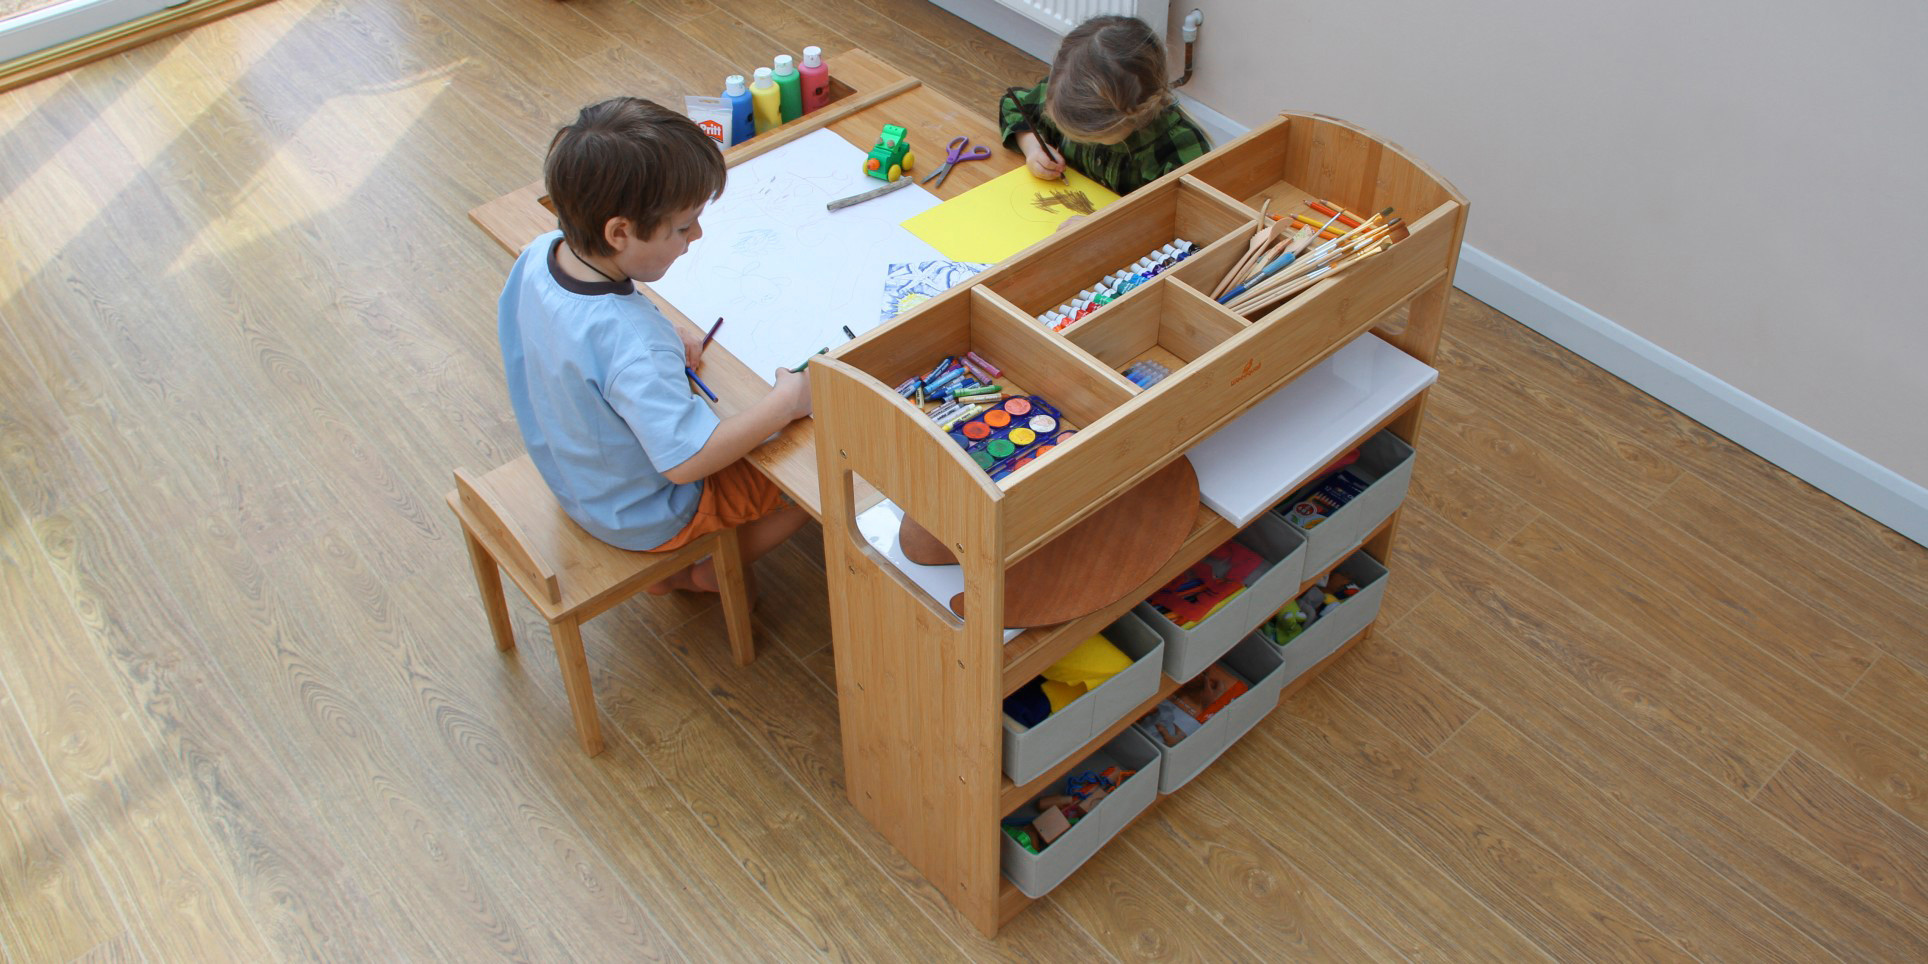 Children S Arts And Crafts Table And Chairs Children S Furniture From